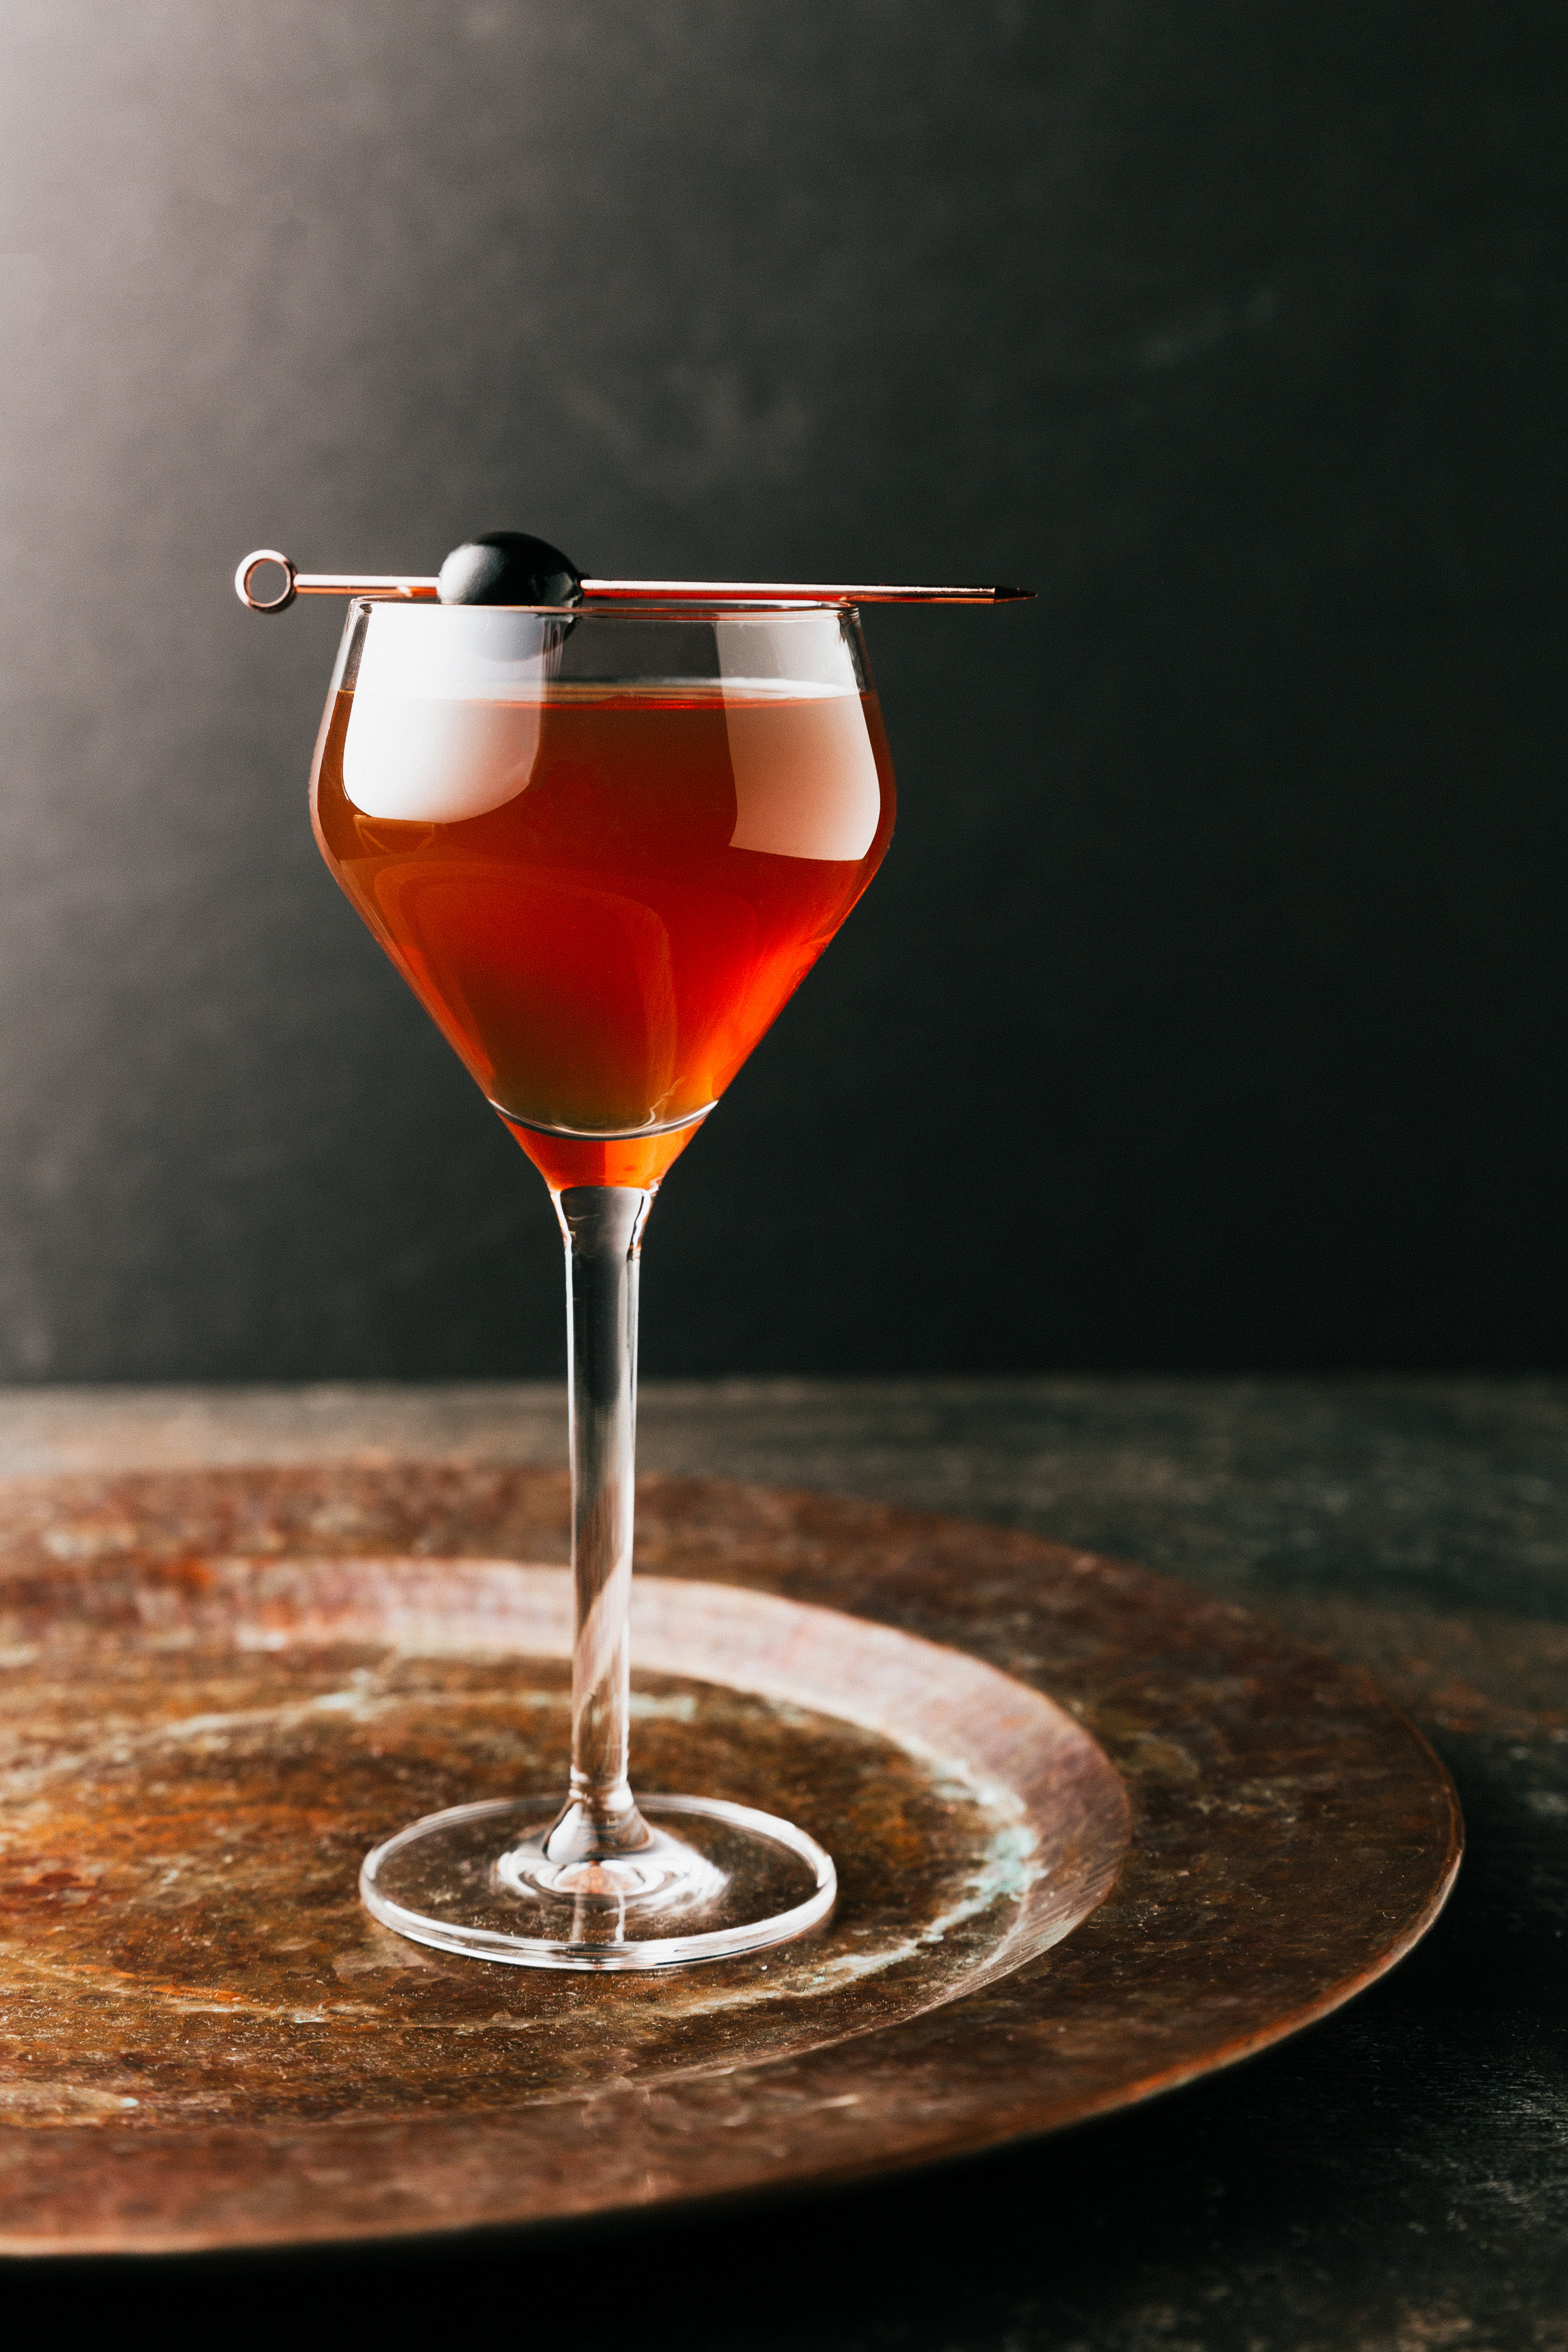 Black Manhattan    1 oz. VIGO Amaro    2 oz. Bluecoat Barrel Finished Gin    Measure the ingredients listed above into a mixing glass    Stir and serve on the rocks    Garnish with a cherry